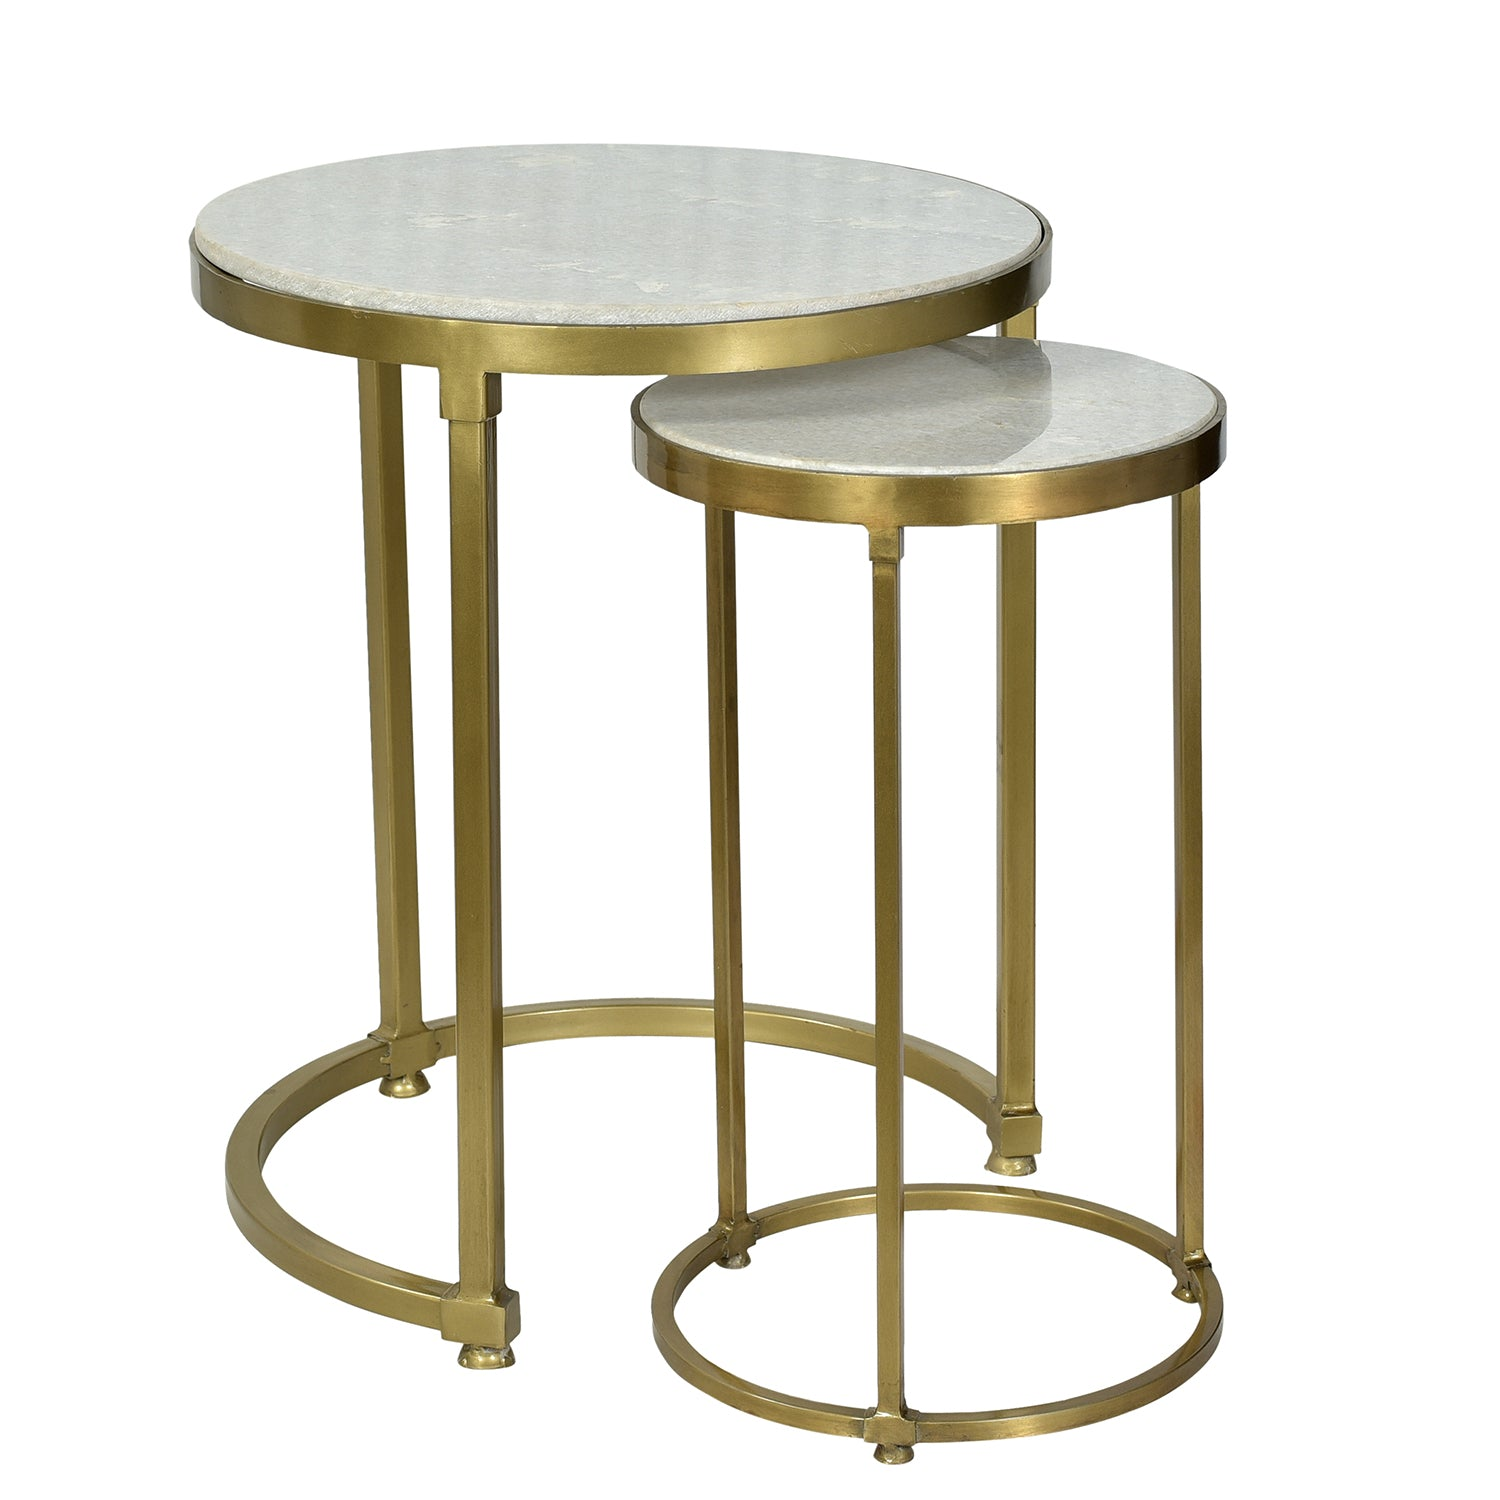 Sofia Iron Amp Marble Nesting Tables Antique Brass